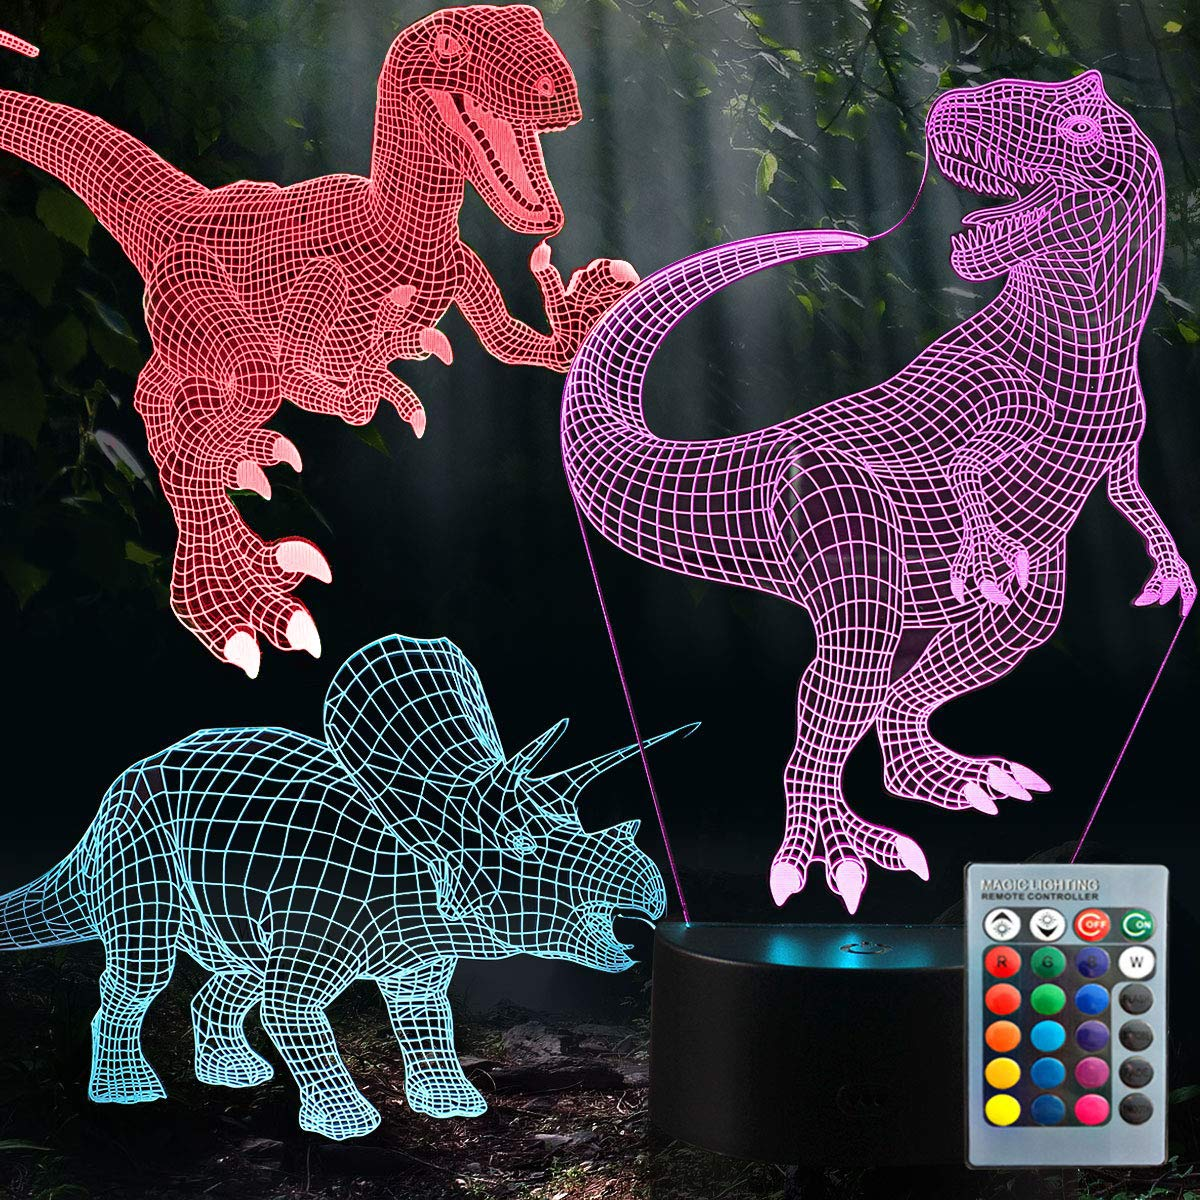 HutaoLi 3D Dinosaur Night Light - 3D Illusion Lamp Three Pattern and 7 Color Change Decor Lamp with Remote Control for Kids, Dinosaur Gifts for Kids